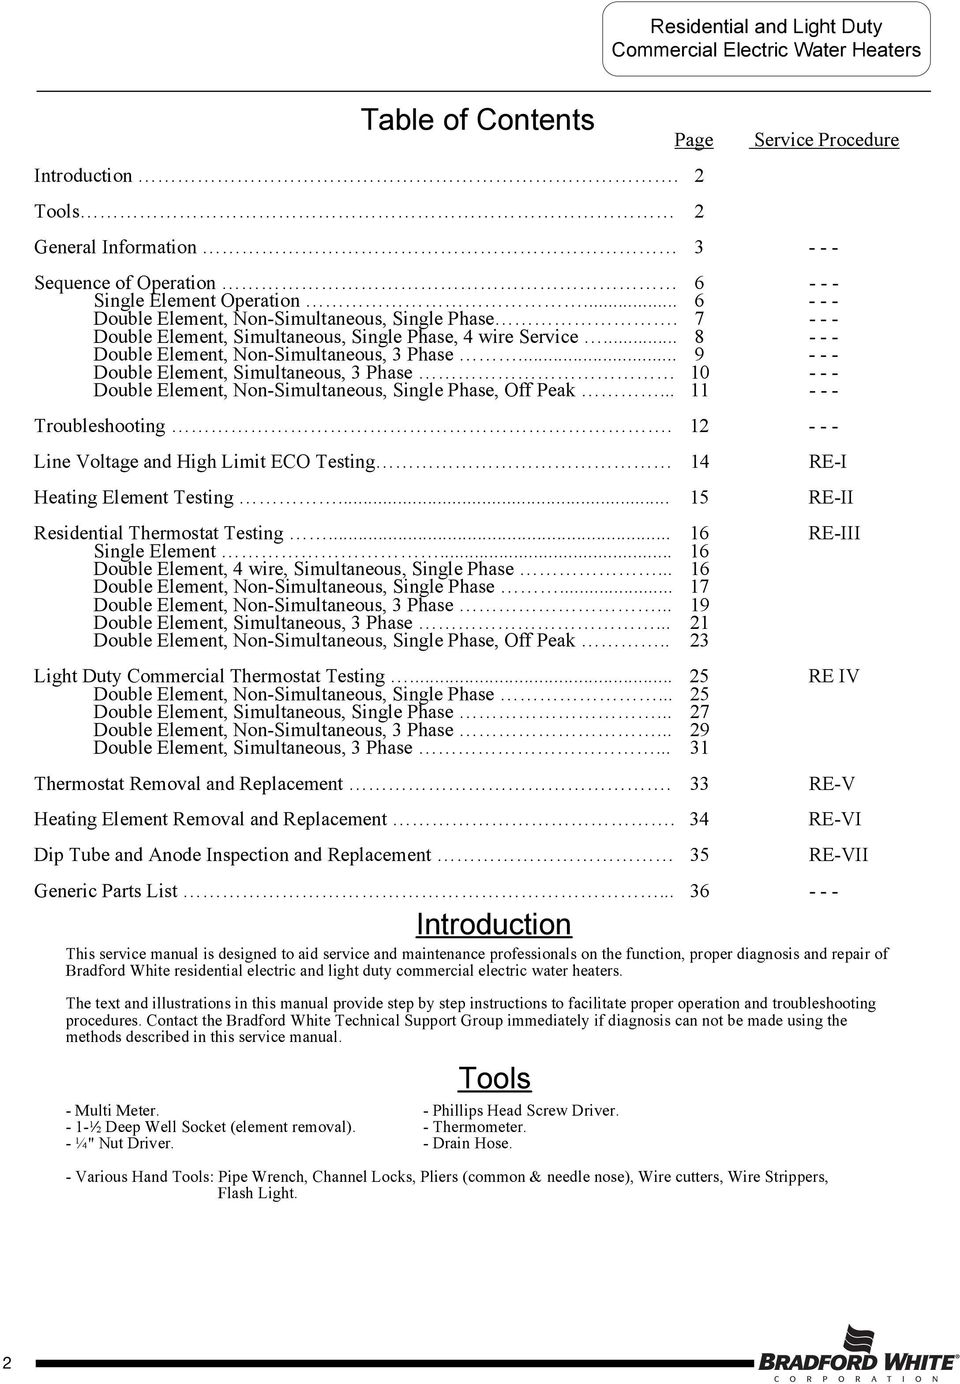 SERVICE MANUAL RESIDENTIAL ELECTRIC AND LIGHT DUTY COMMERCIAL ... on